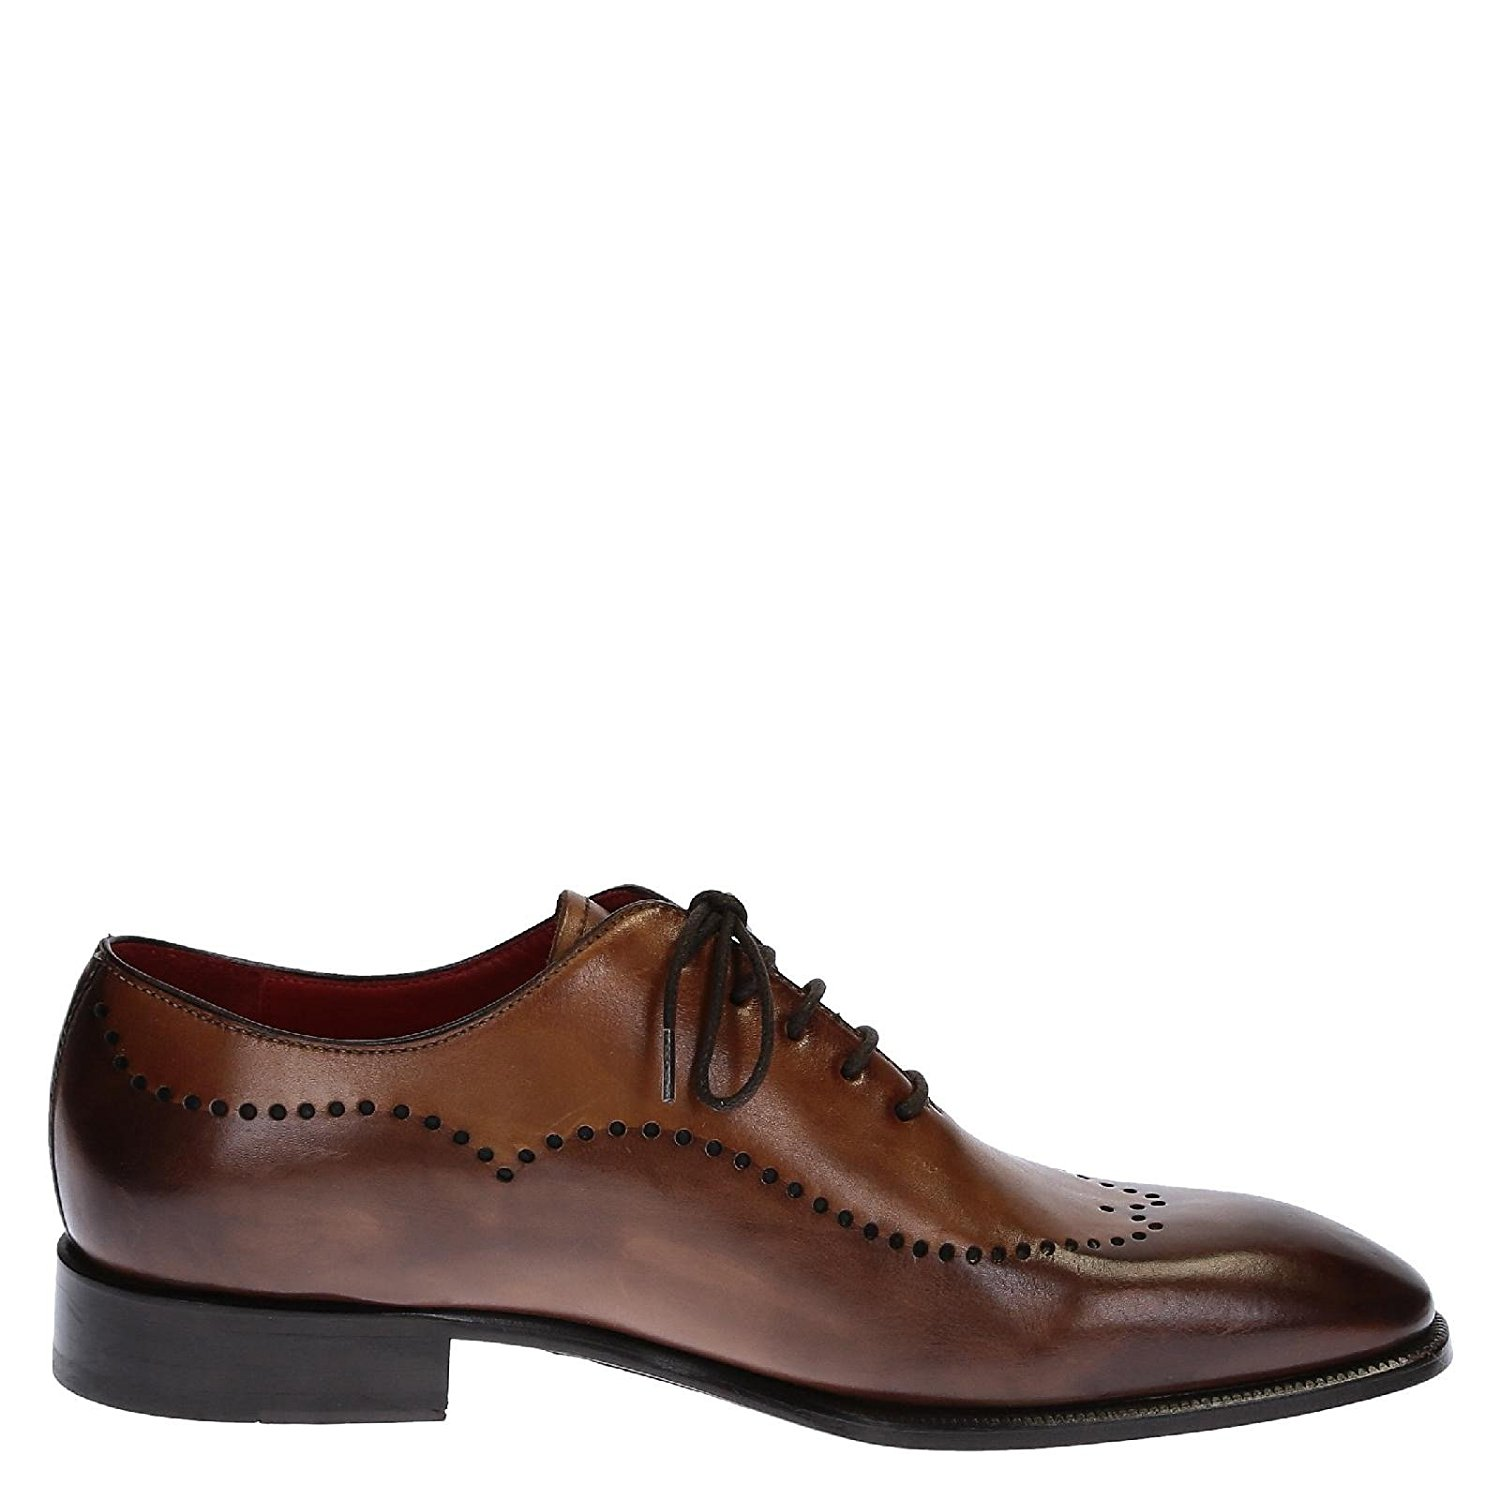 LEONARDO SHOES Men's 0688114221FORMASCAMONTECARLO Brown Leather Lace-up Shoes